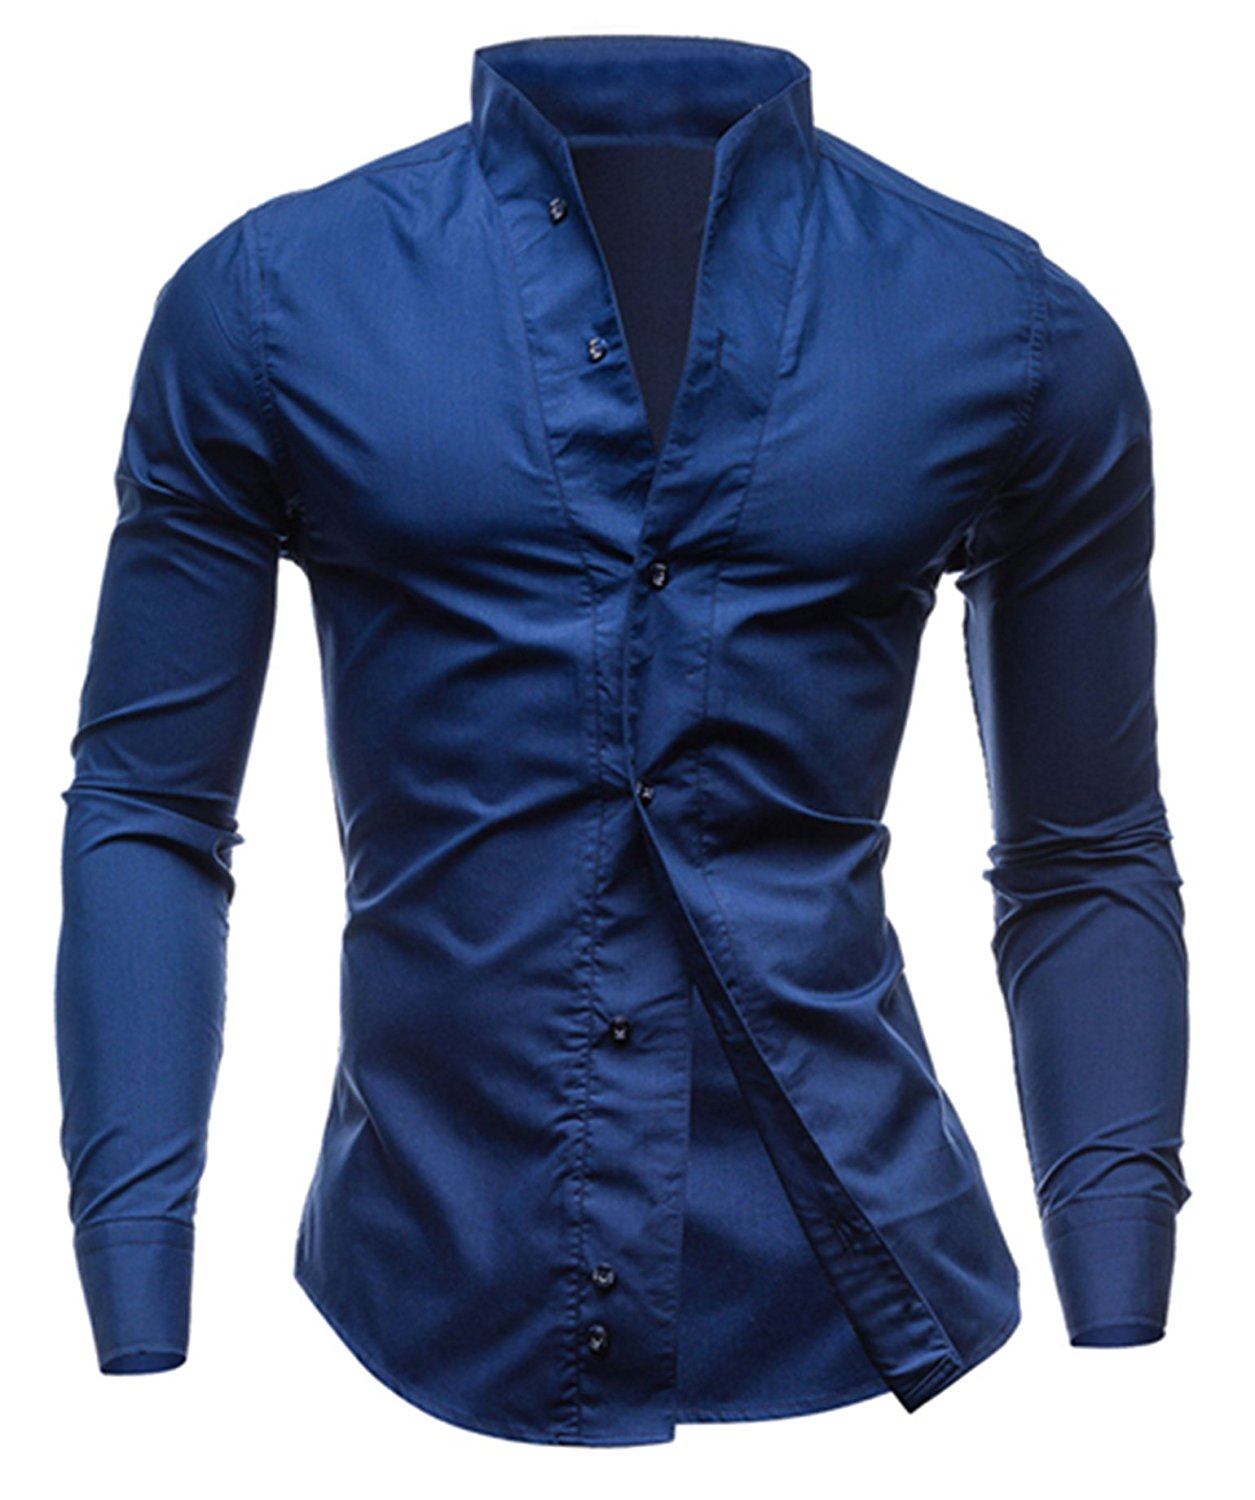 Cheap Slim Fit Wing Collar Shirt Find Slim Fit Wing Collar Shirt